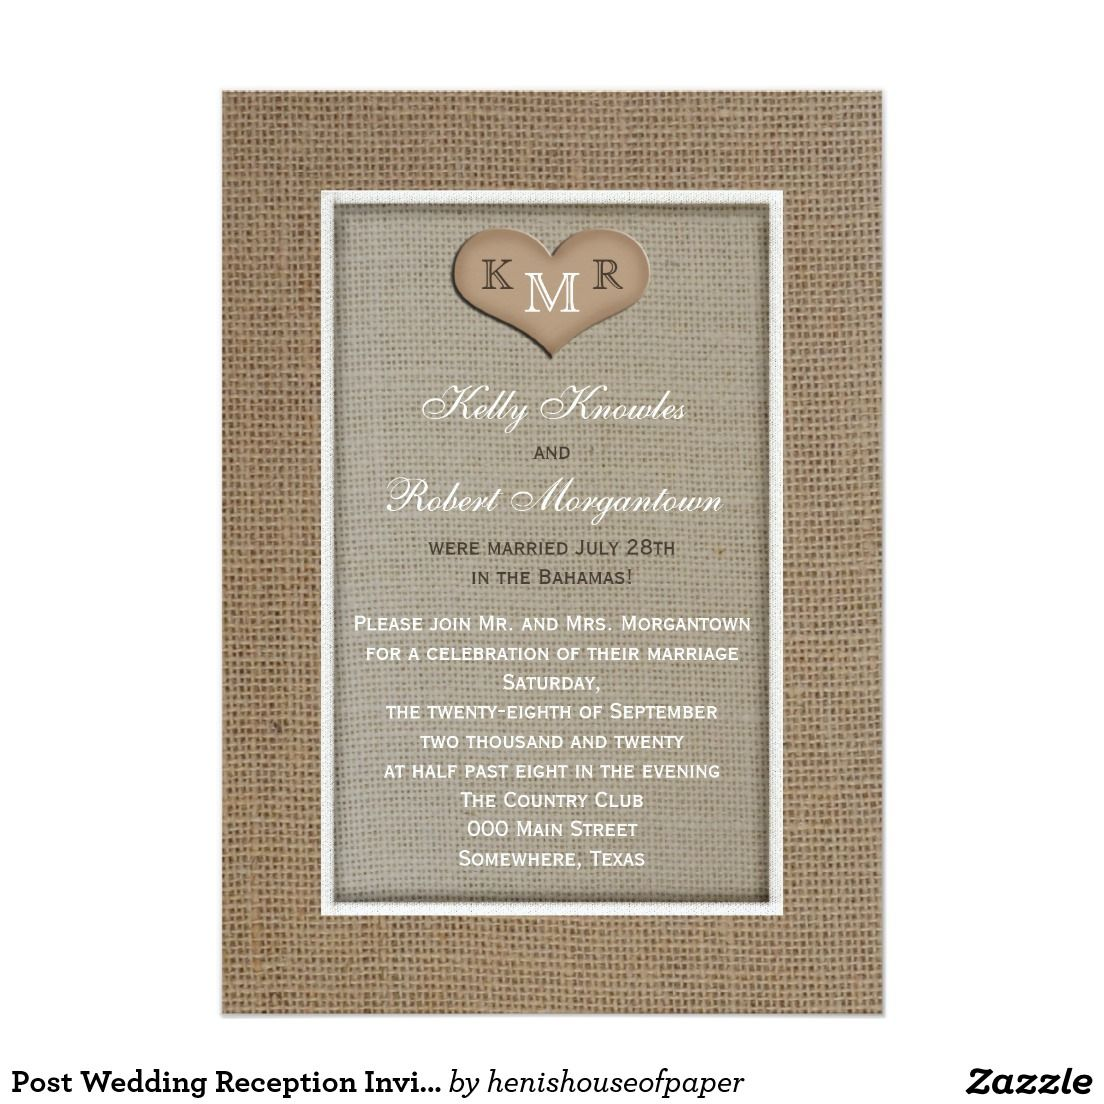 Post Wedding Reception Invitation Burlap 5 X 7 Invitation Card